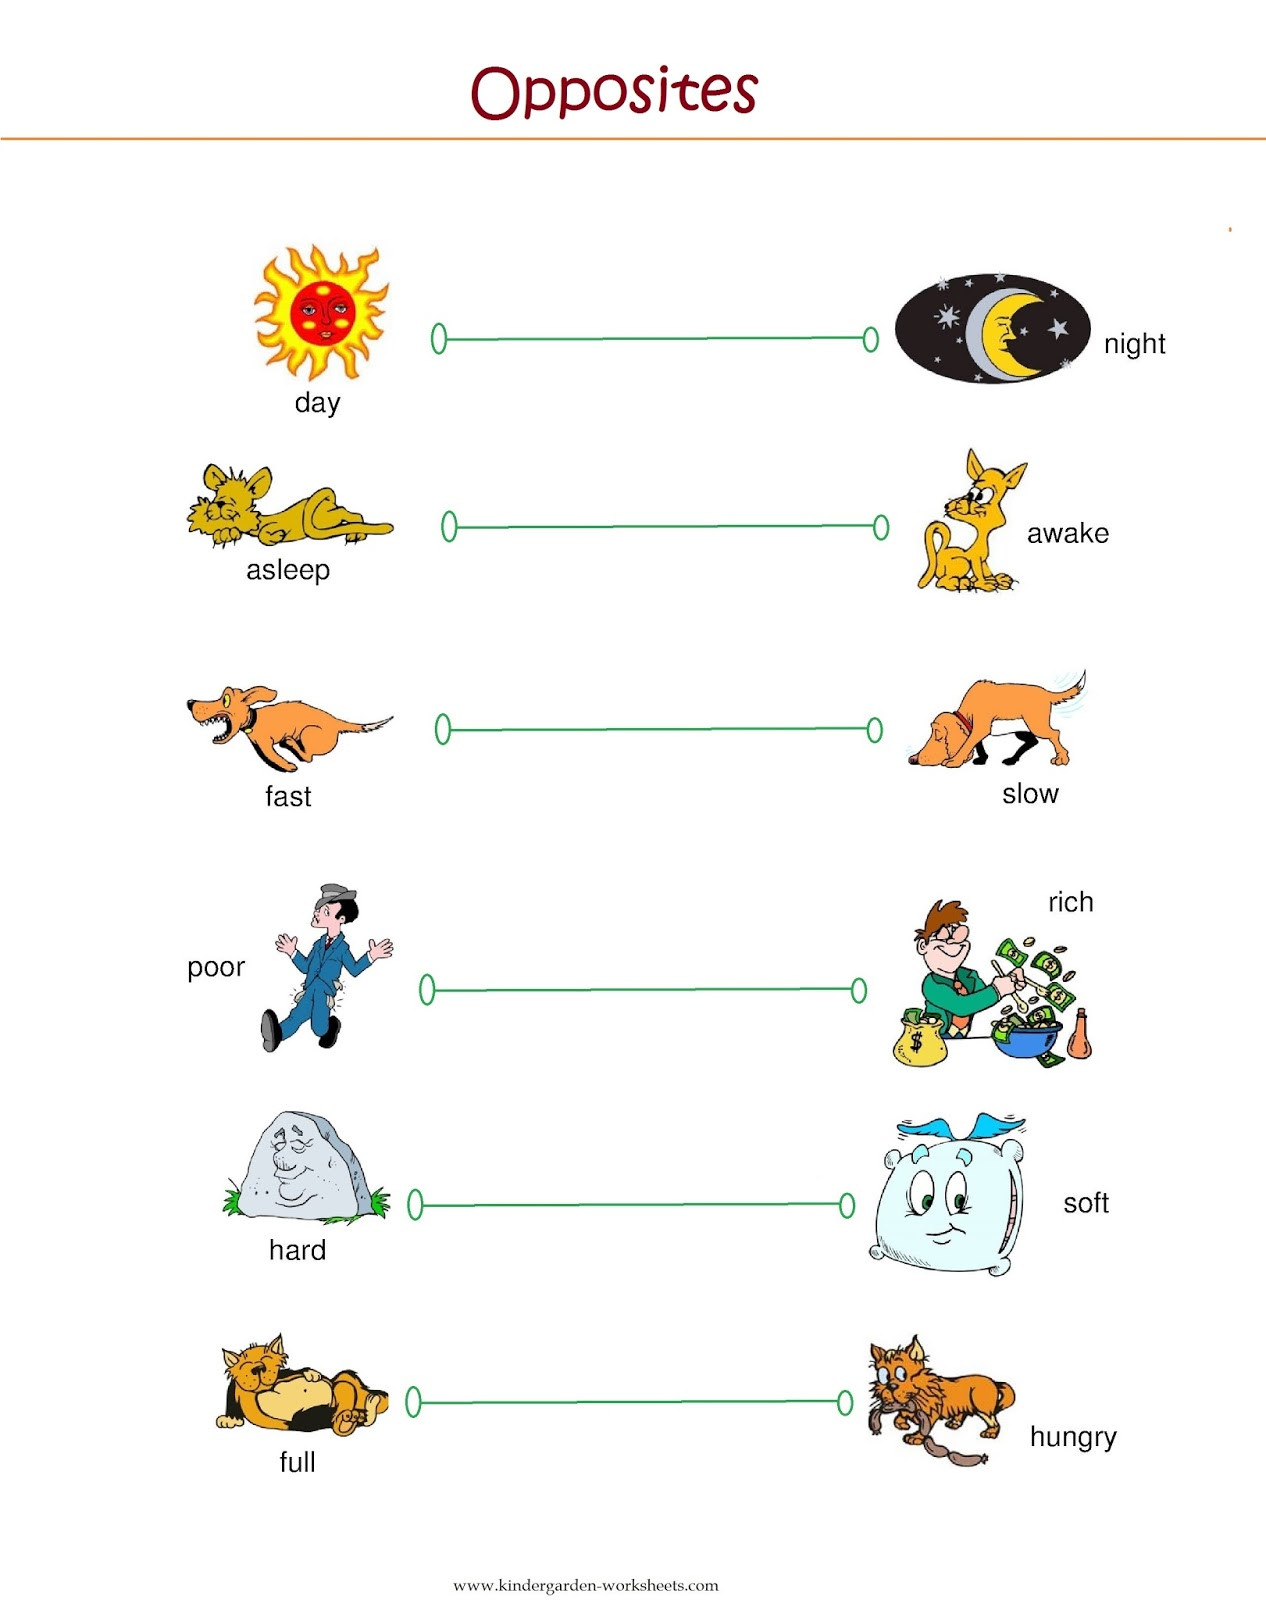 Preschool Opposites Worksheets Free Printable Opposites Worksheets for Preschoolers